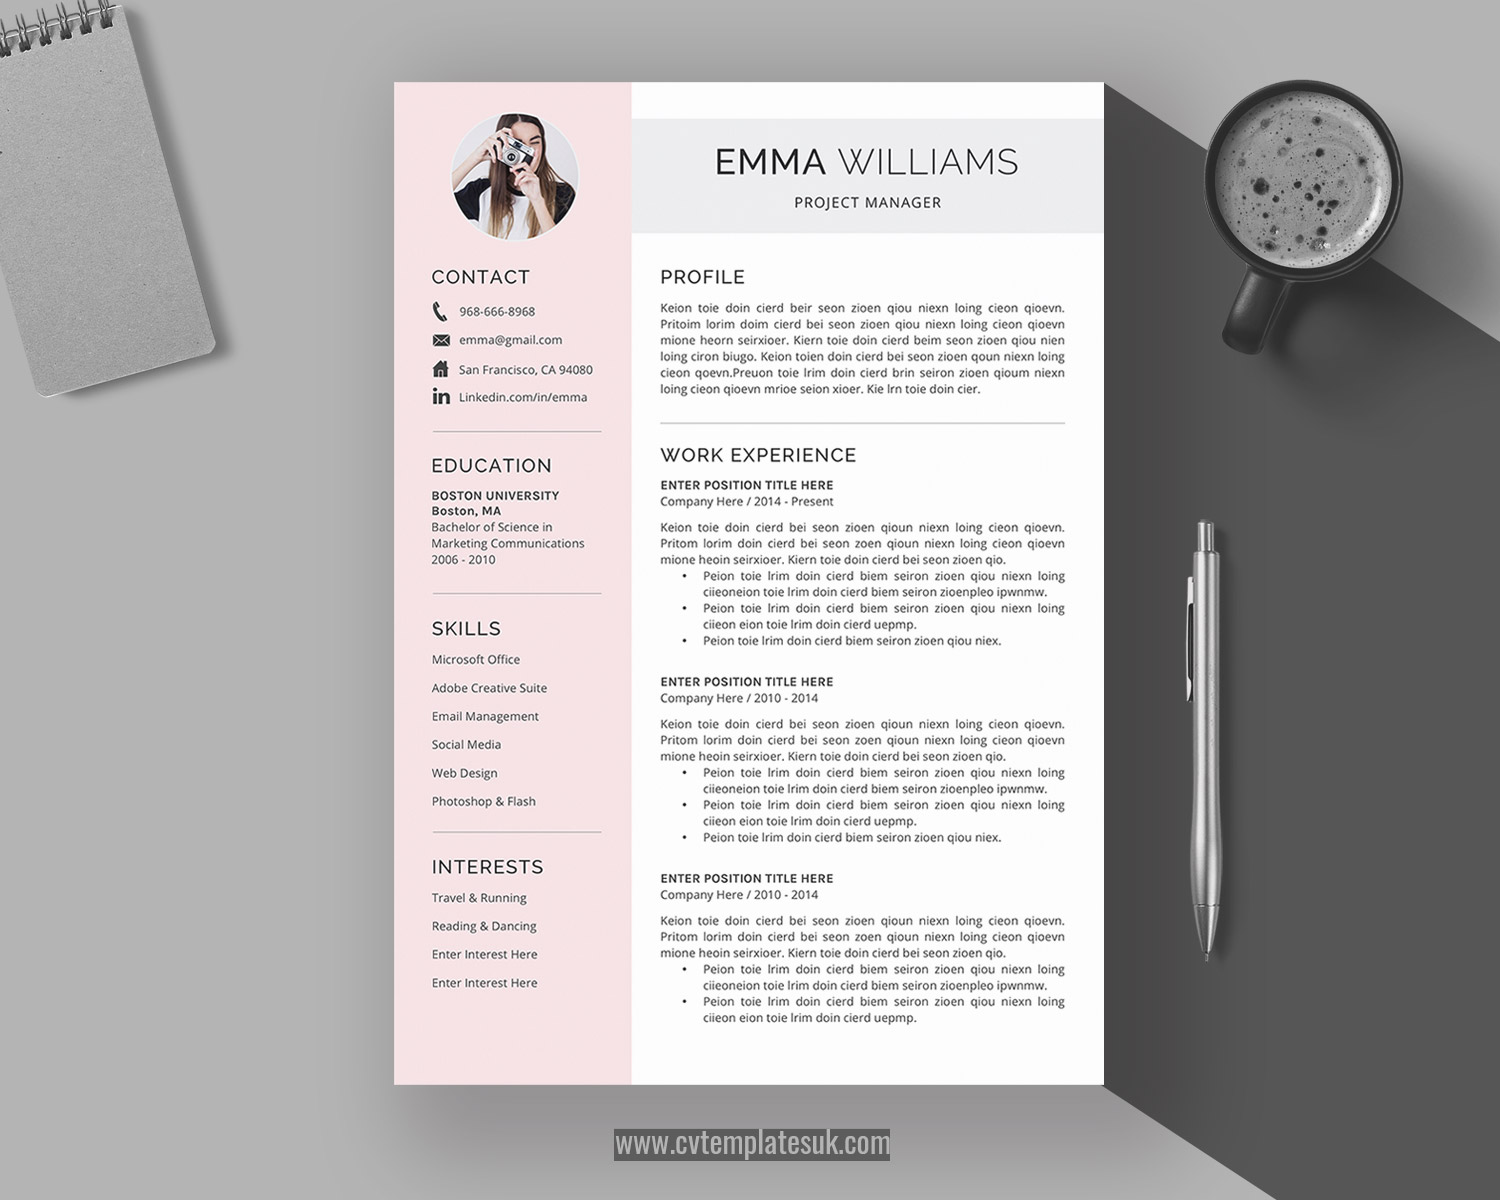 Creative Resume Template Cover Letter 2020 Professional Resume Template for Word Instant Download Modern Resume 1-3 Page CV Template